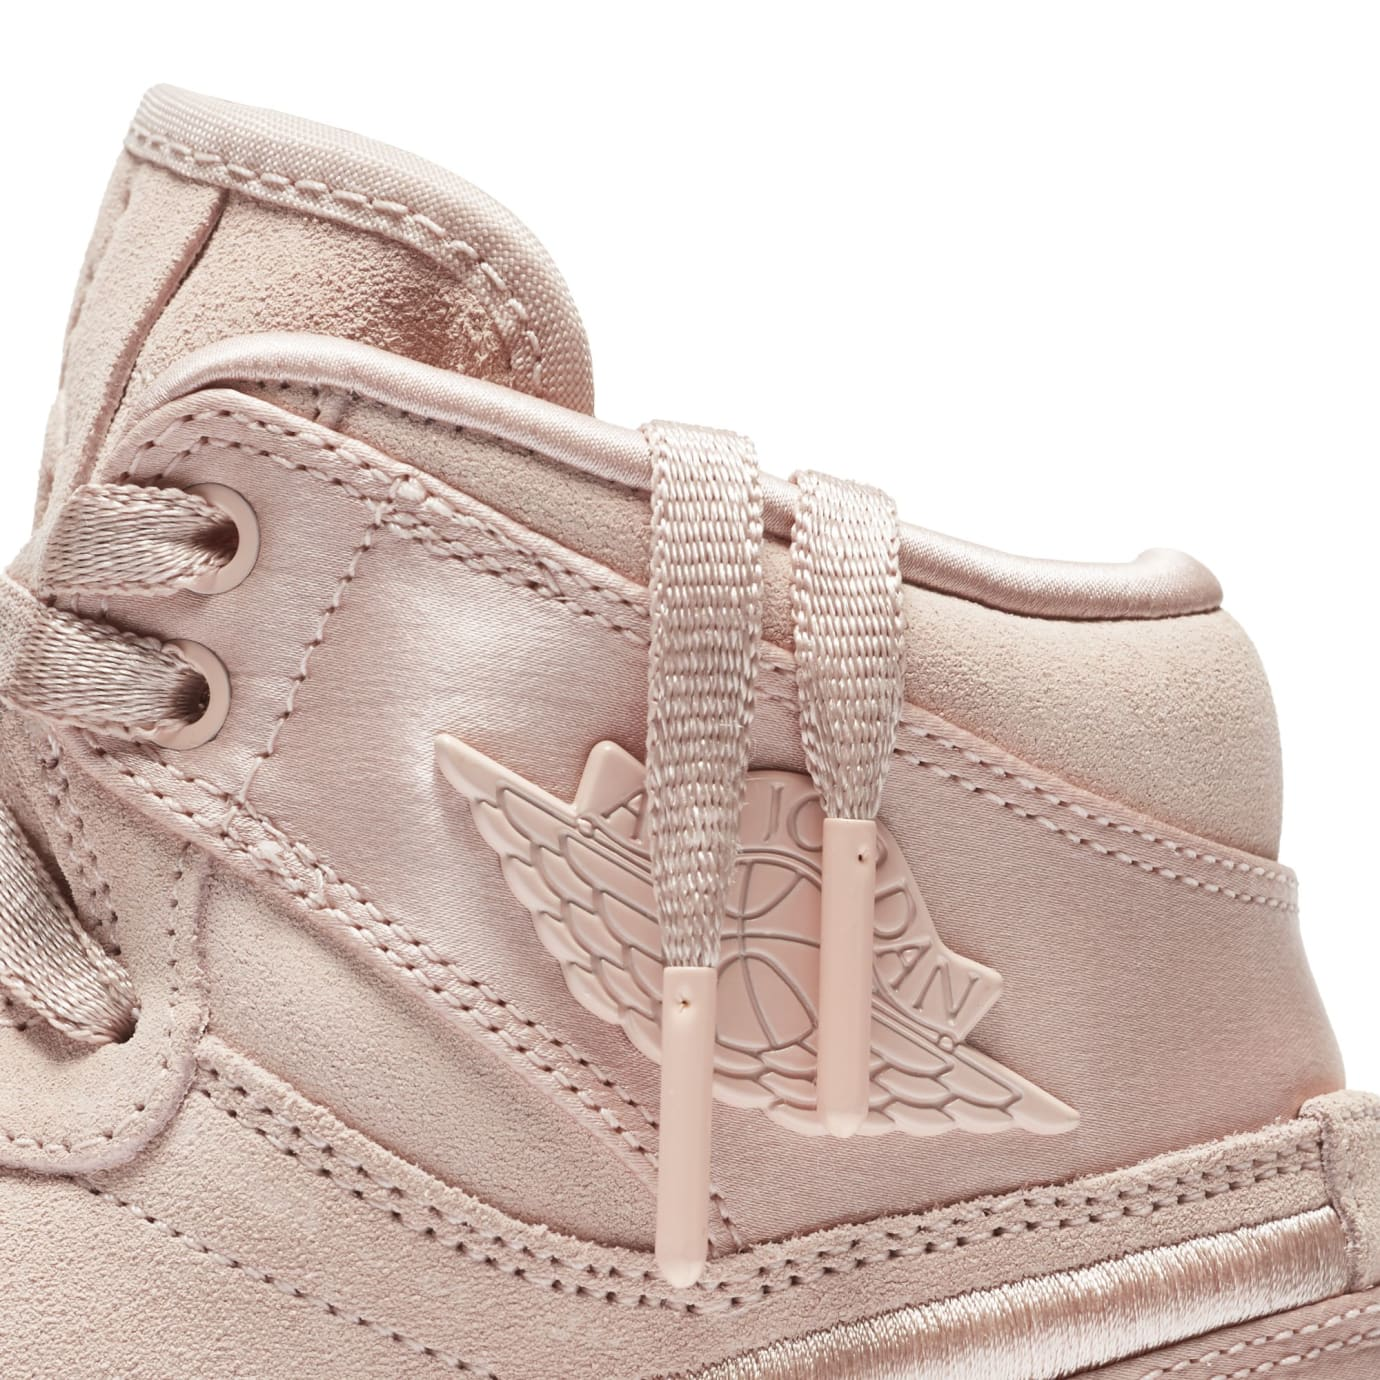 Air Jordan 1 Summer of High 'Sunset Tint' Sunset Tint/White-Metallic Gold (Detail)